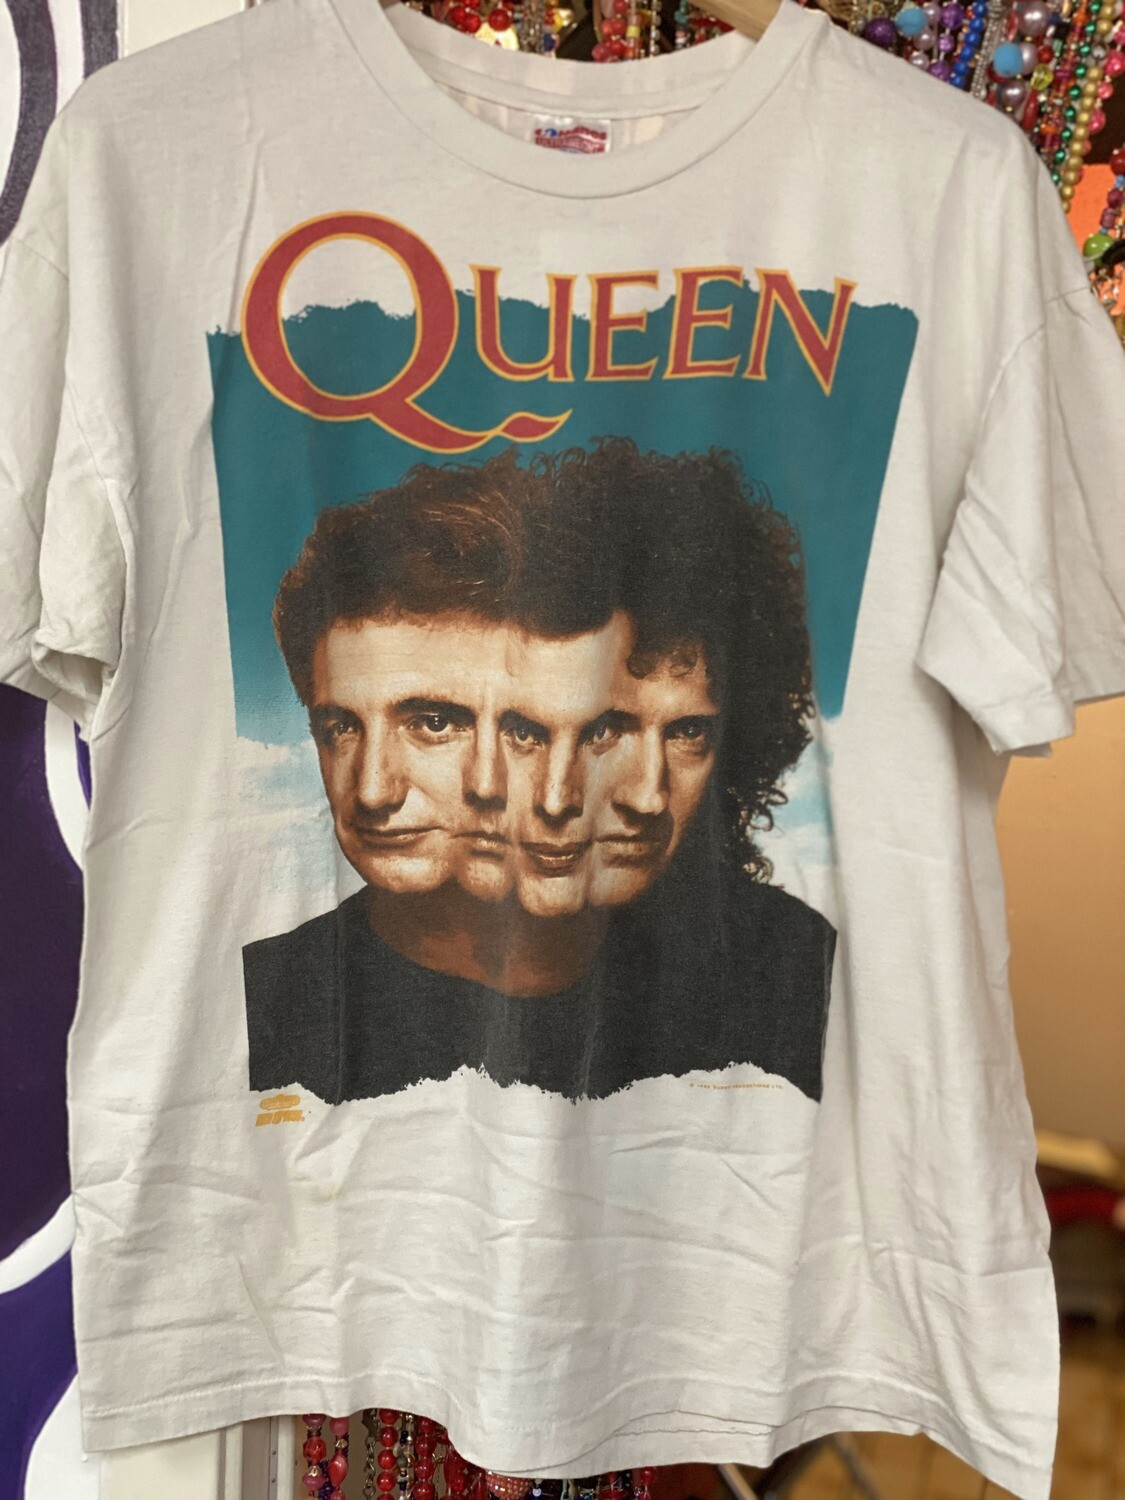 Vintage 1989 Miracle Album Cover 1992 Queen Shirt - XL